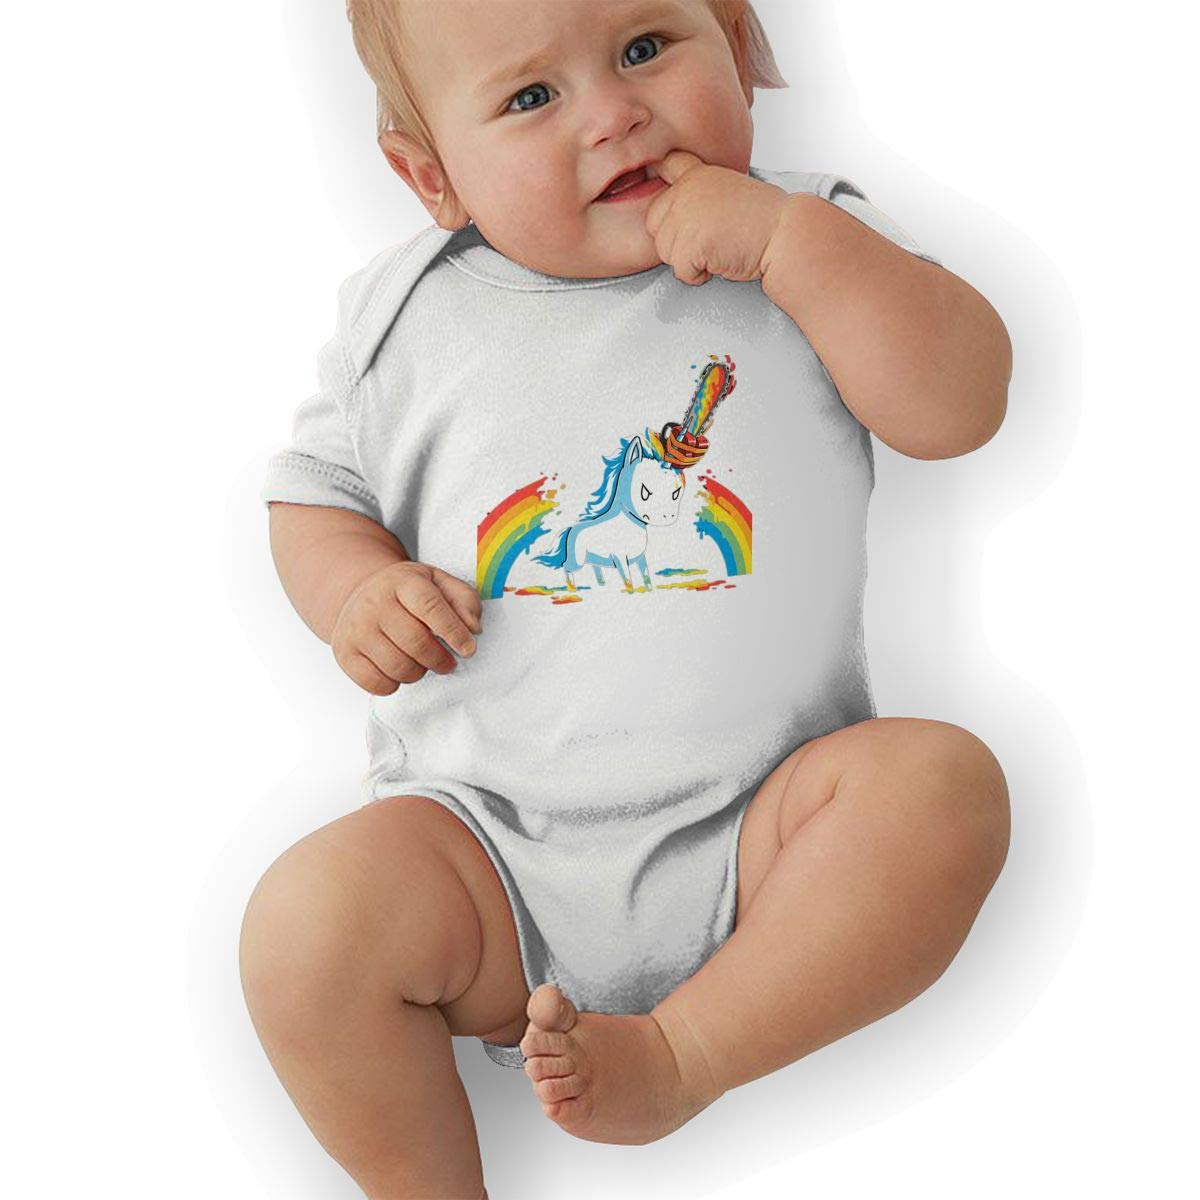 Rainbow Chainsaw Massacre Newborn Baby Short Sleeve Romper Infant Summer Clothing